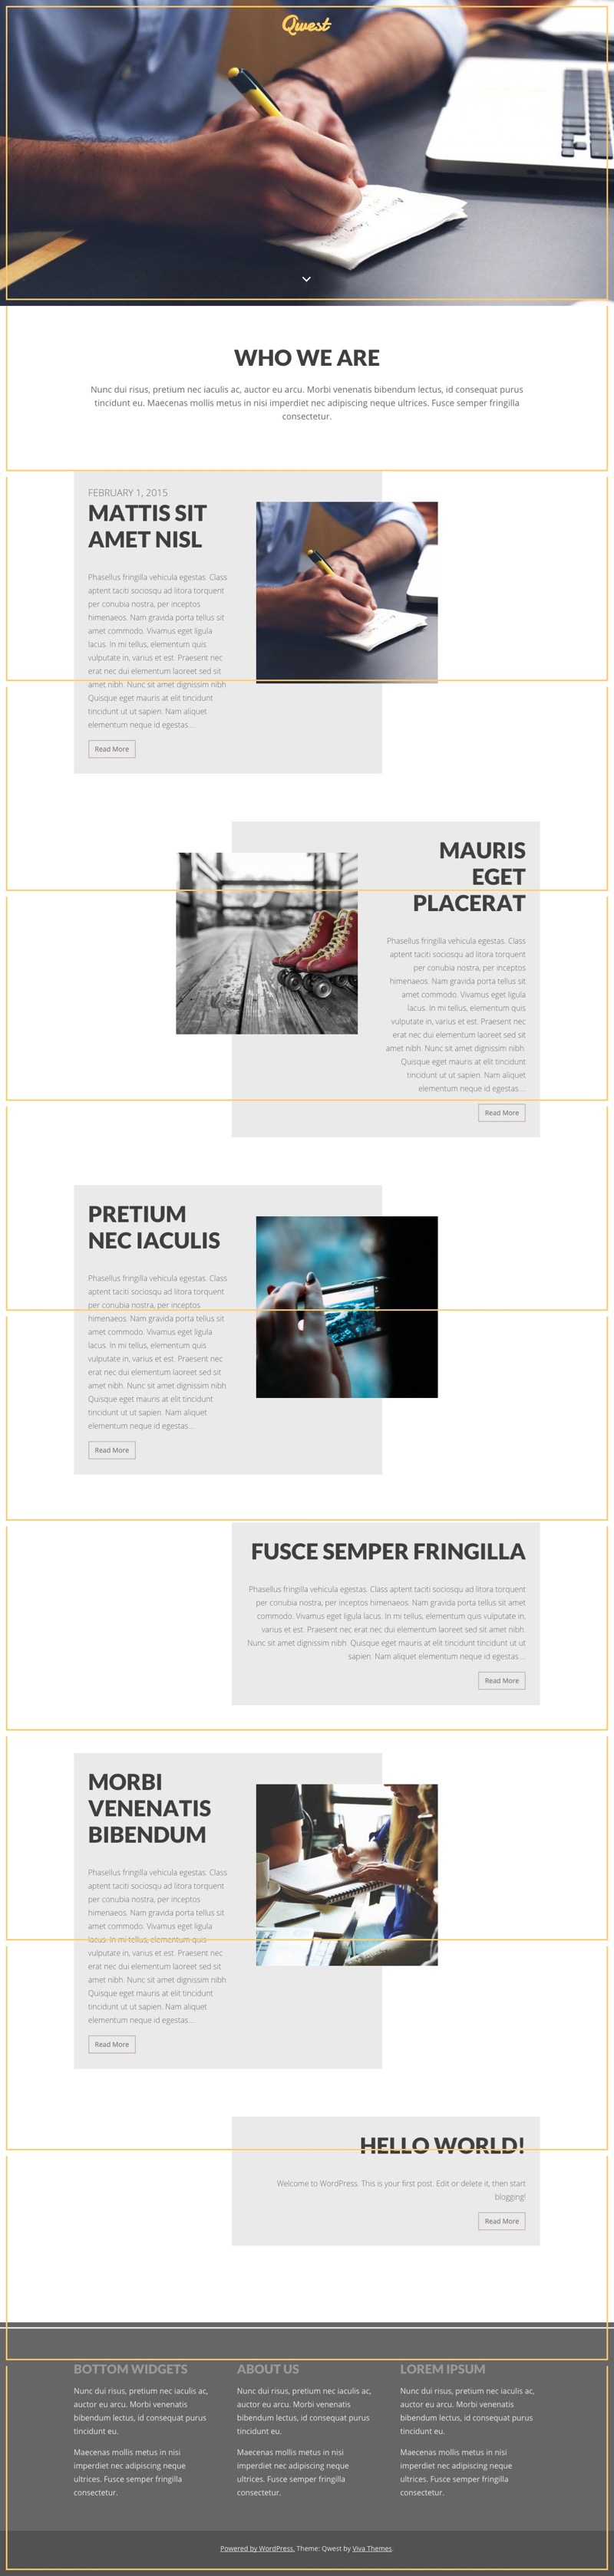 Qwest WordPress Parallax Effect Theme